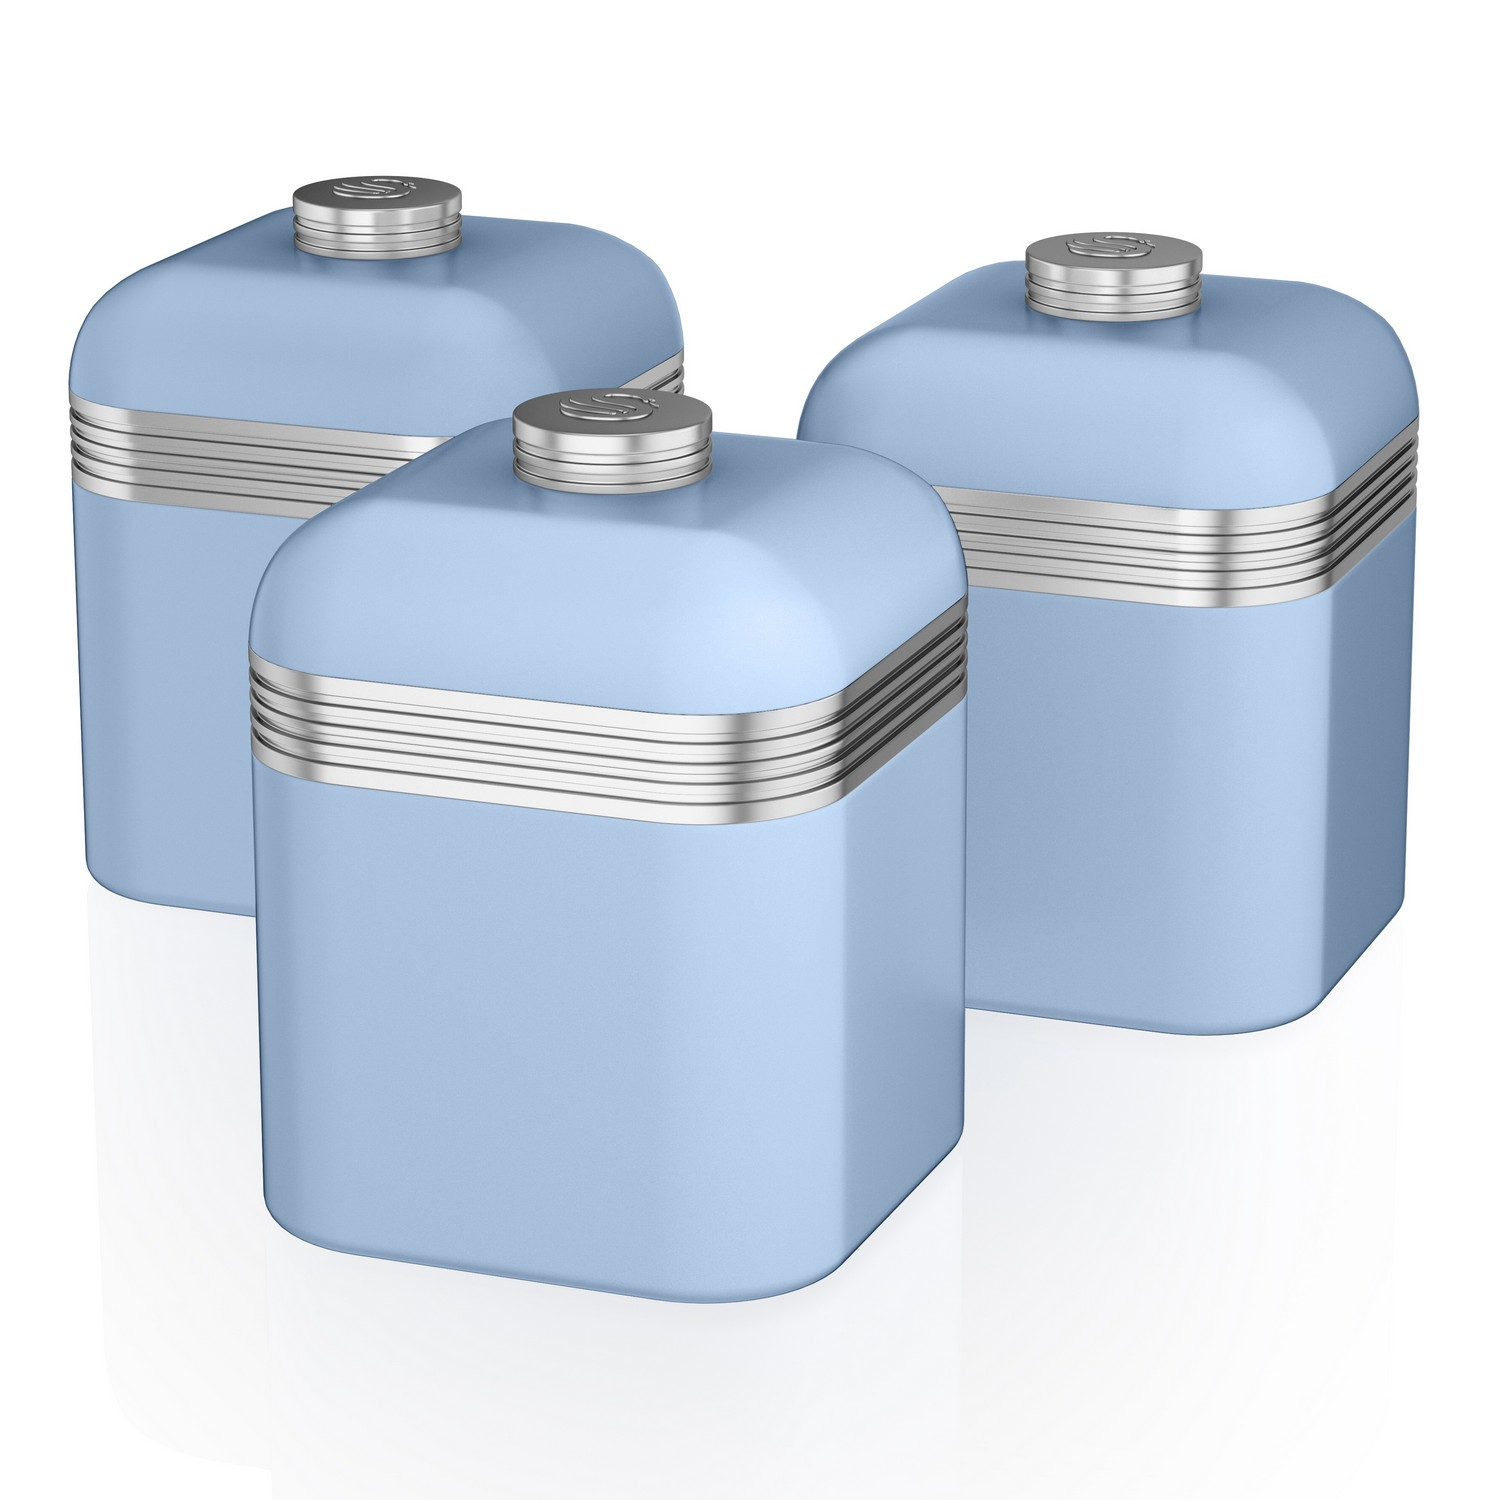 cb81600ec2ae Details about Swan Retro Set of 3 Blue Tea Coffee Sugar Spices Herbs Canisters  Kitchen Storage